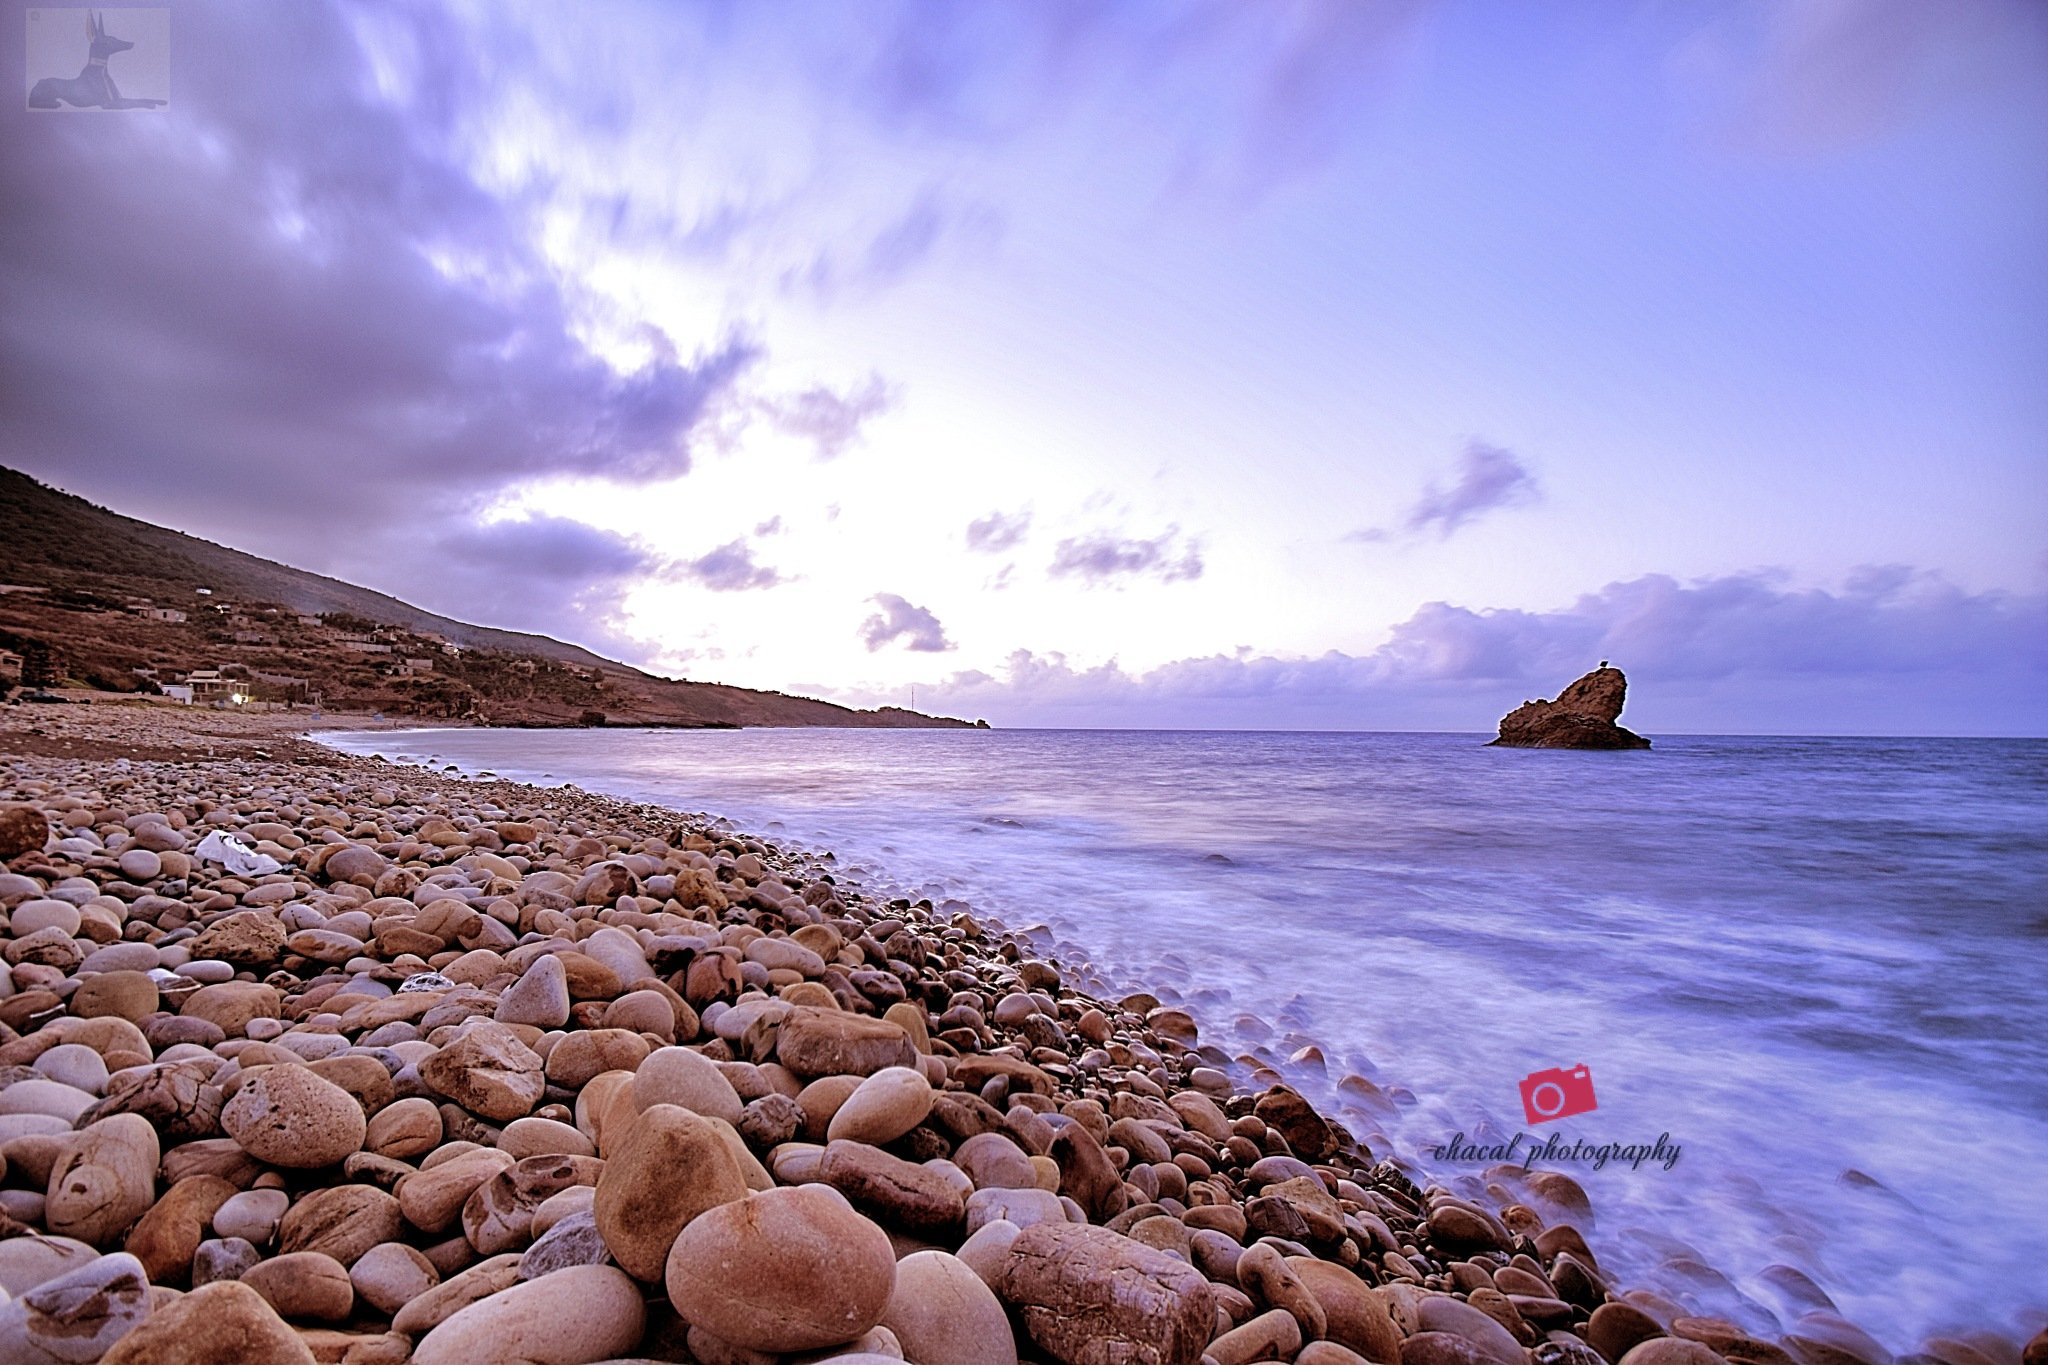 Seashore from Algeria by chacal photography